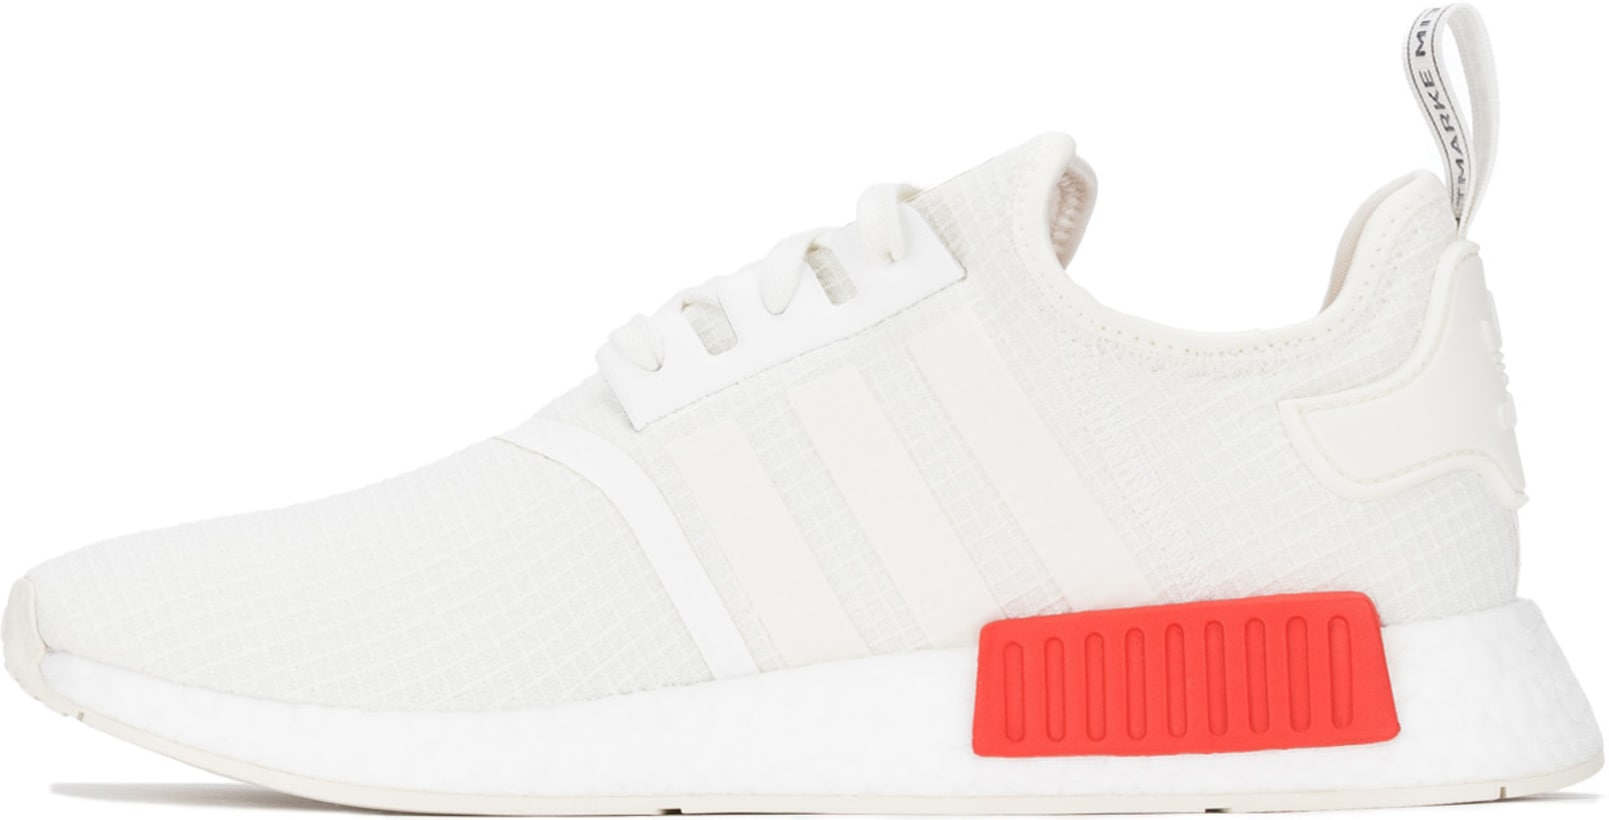 new style f1eb8 5d861 adidas Originals - NMD R1 - Off White/Off White/Lush Red